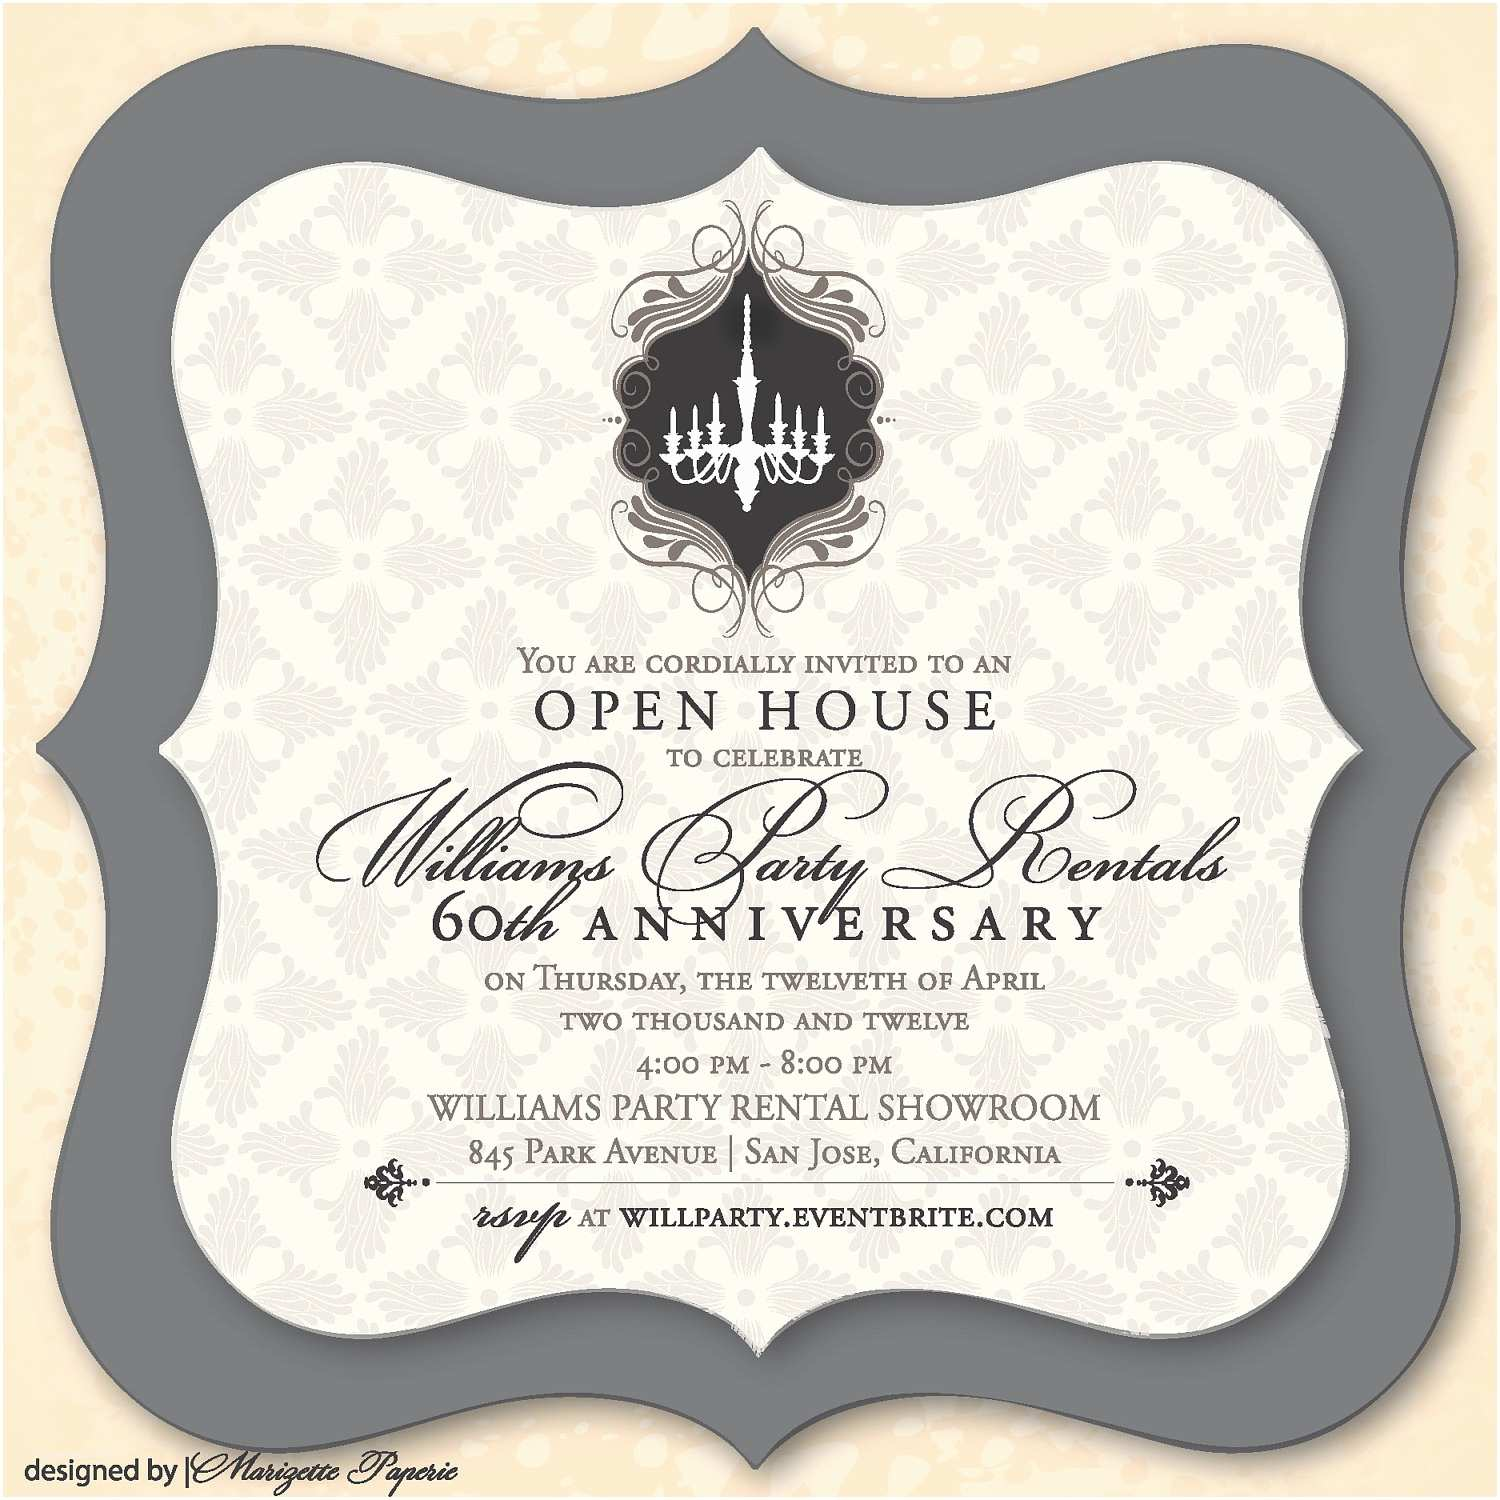 Elegant Party Invitations Elegant Party Invitation By Marizettepaperie On